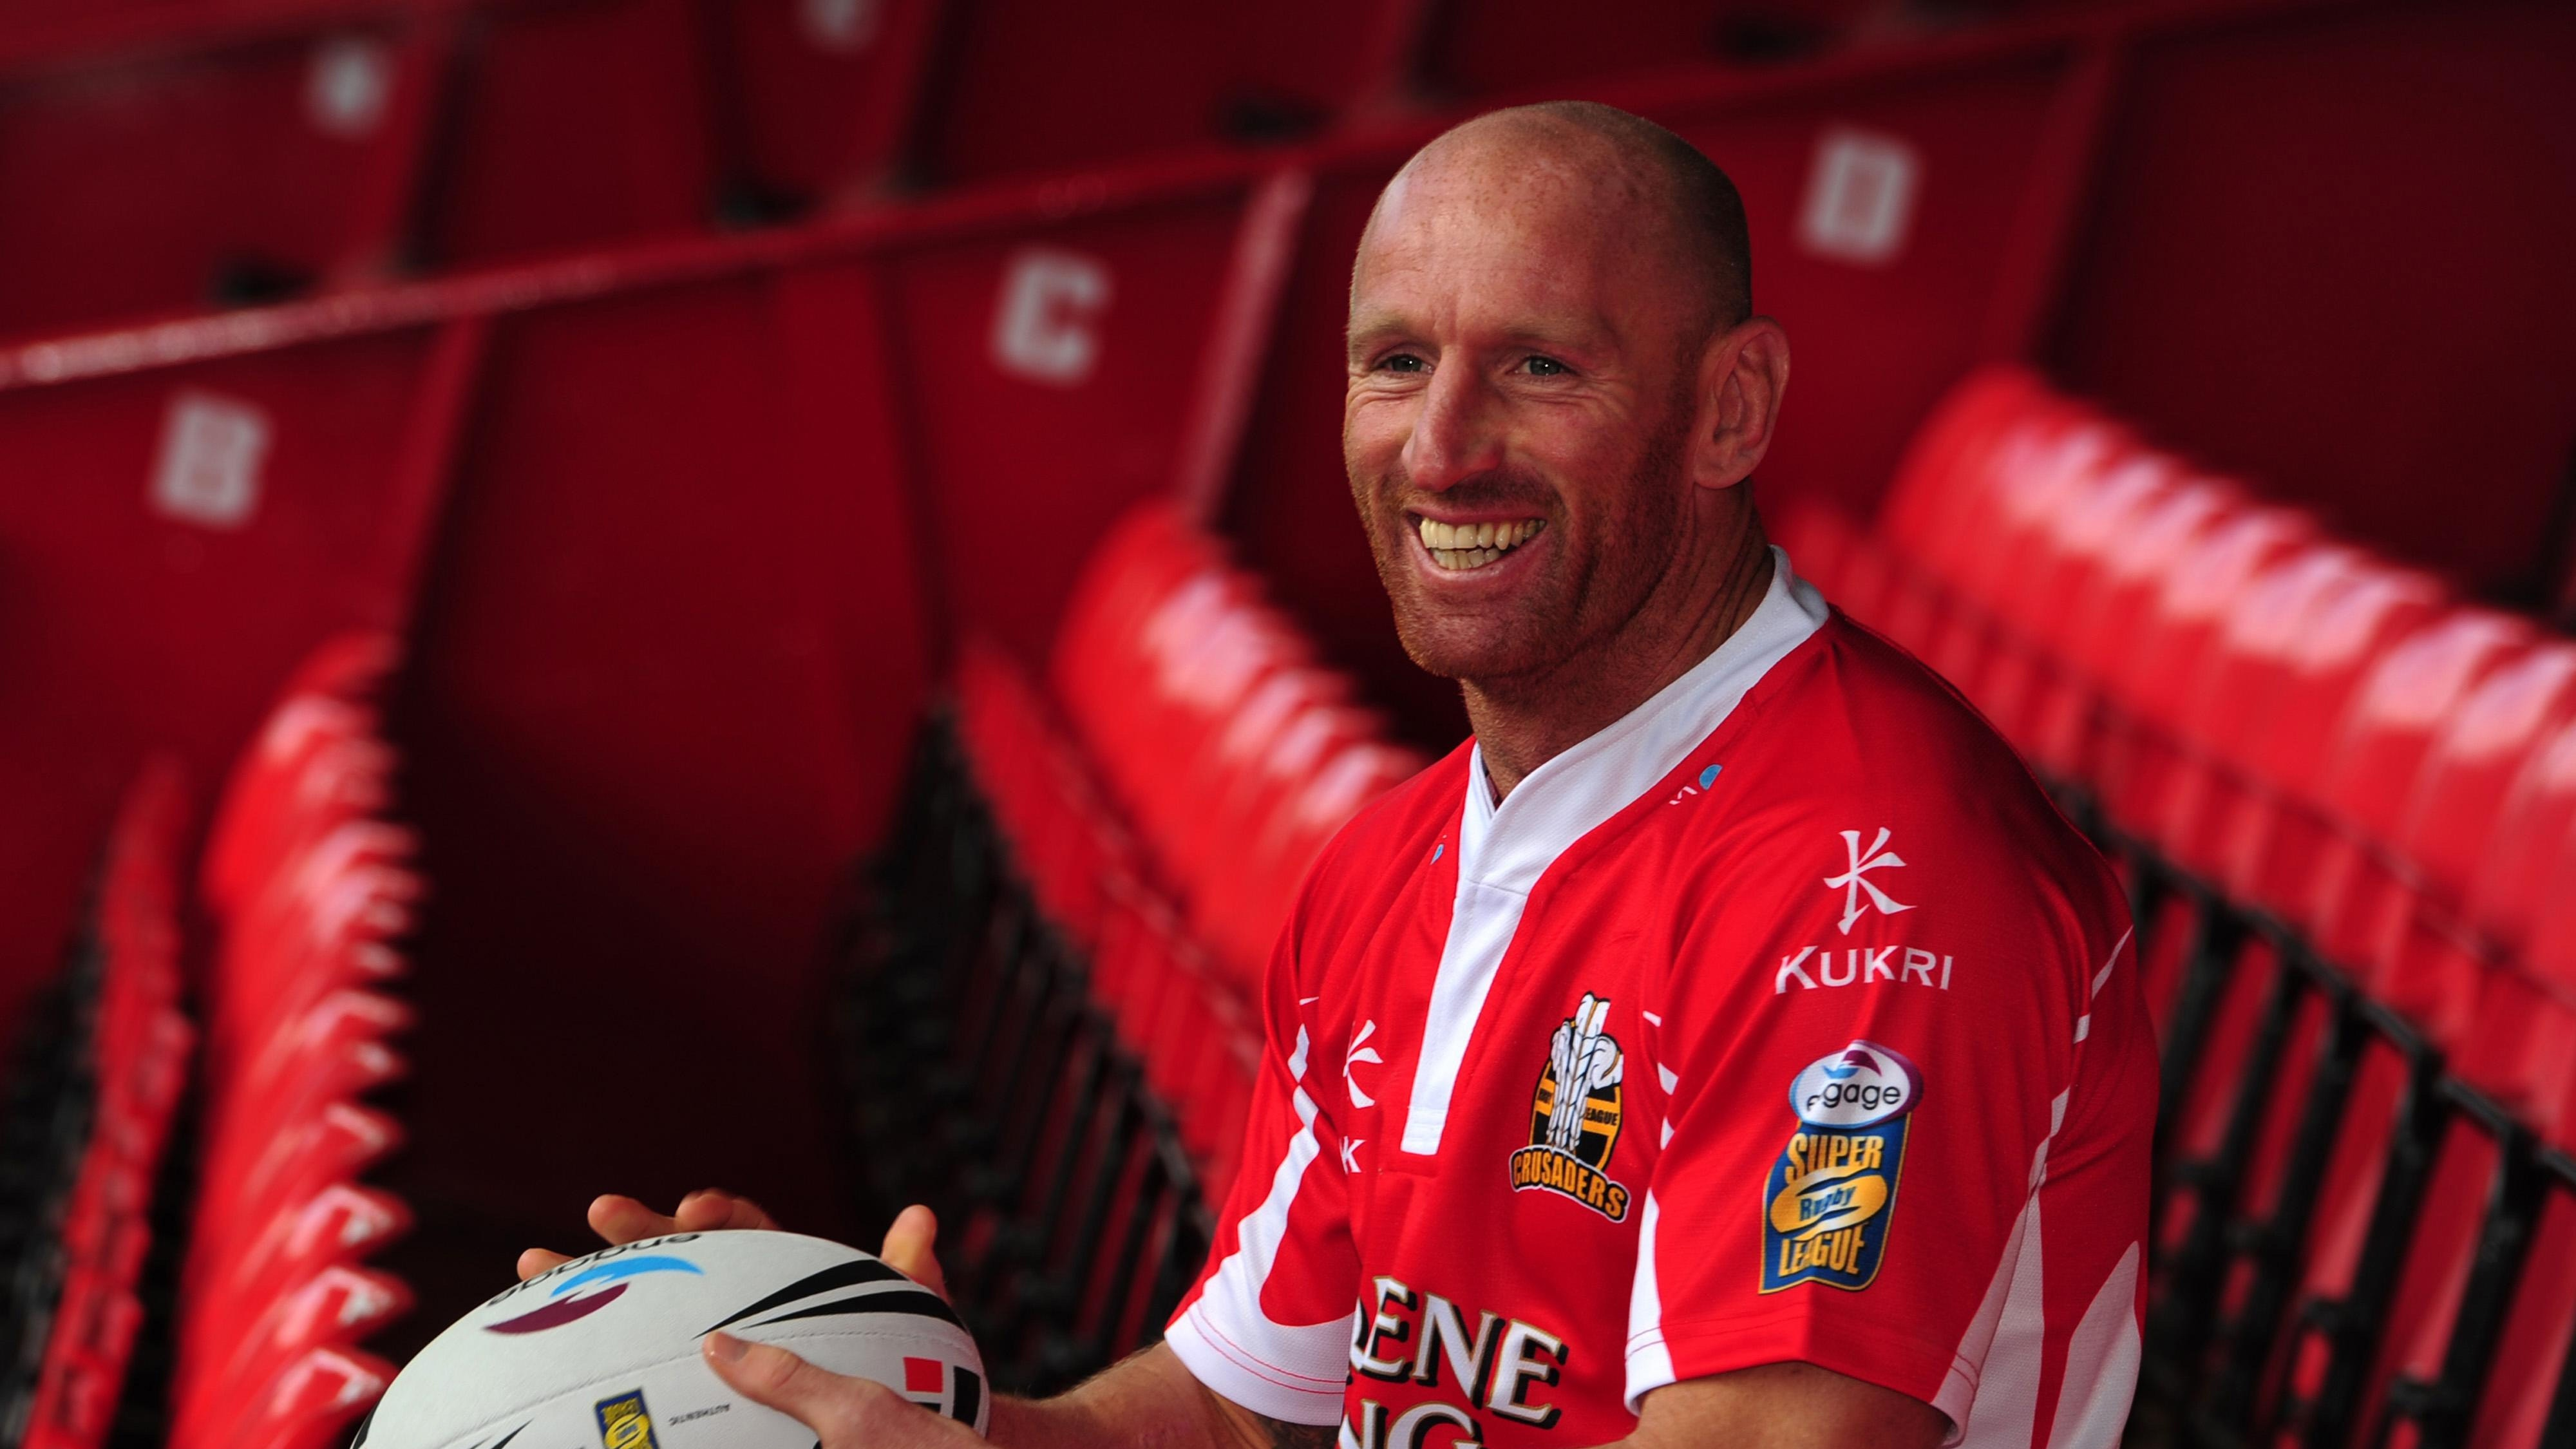 'I've got HIV and it's OK': Gareth Thomas aims to tackle stigma